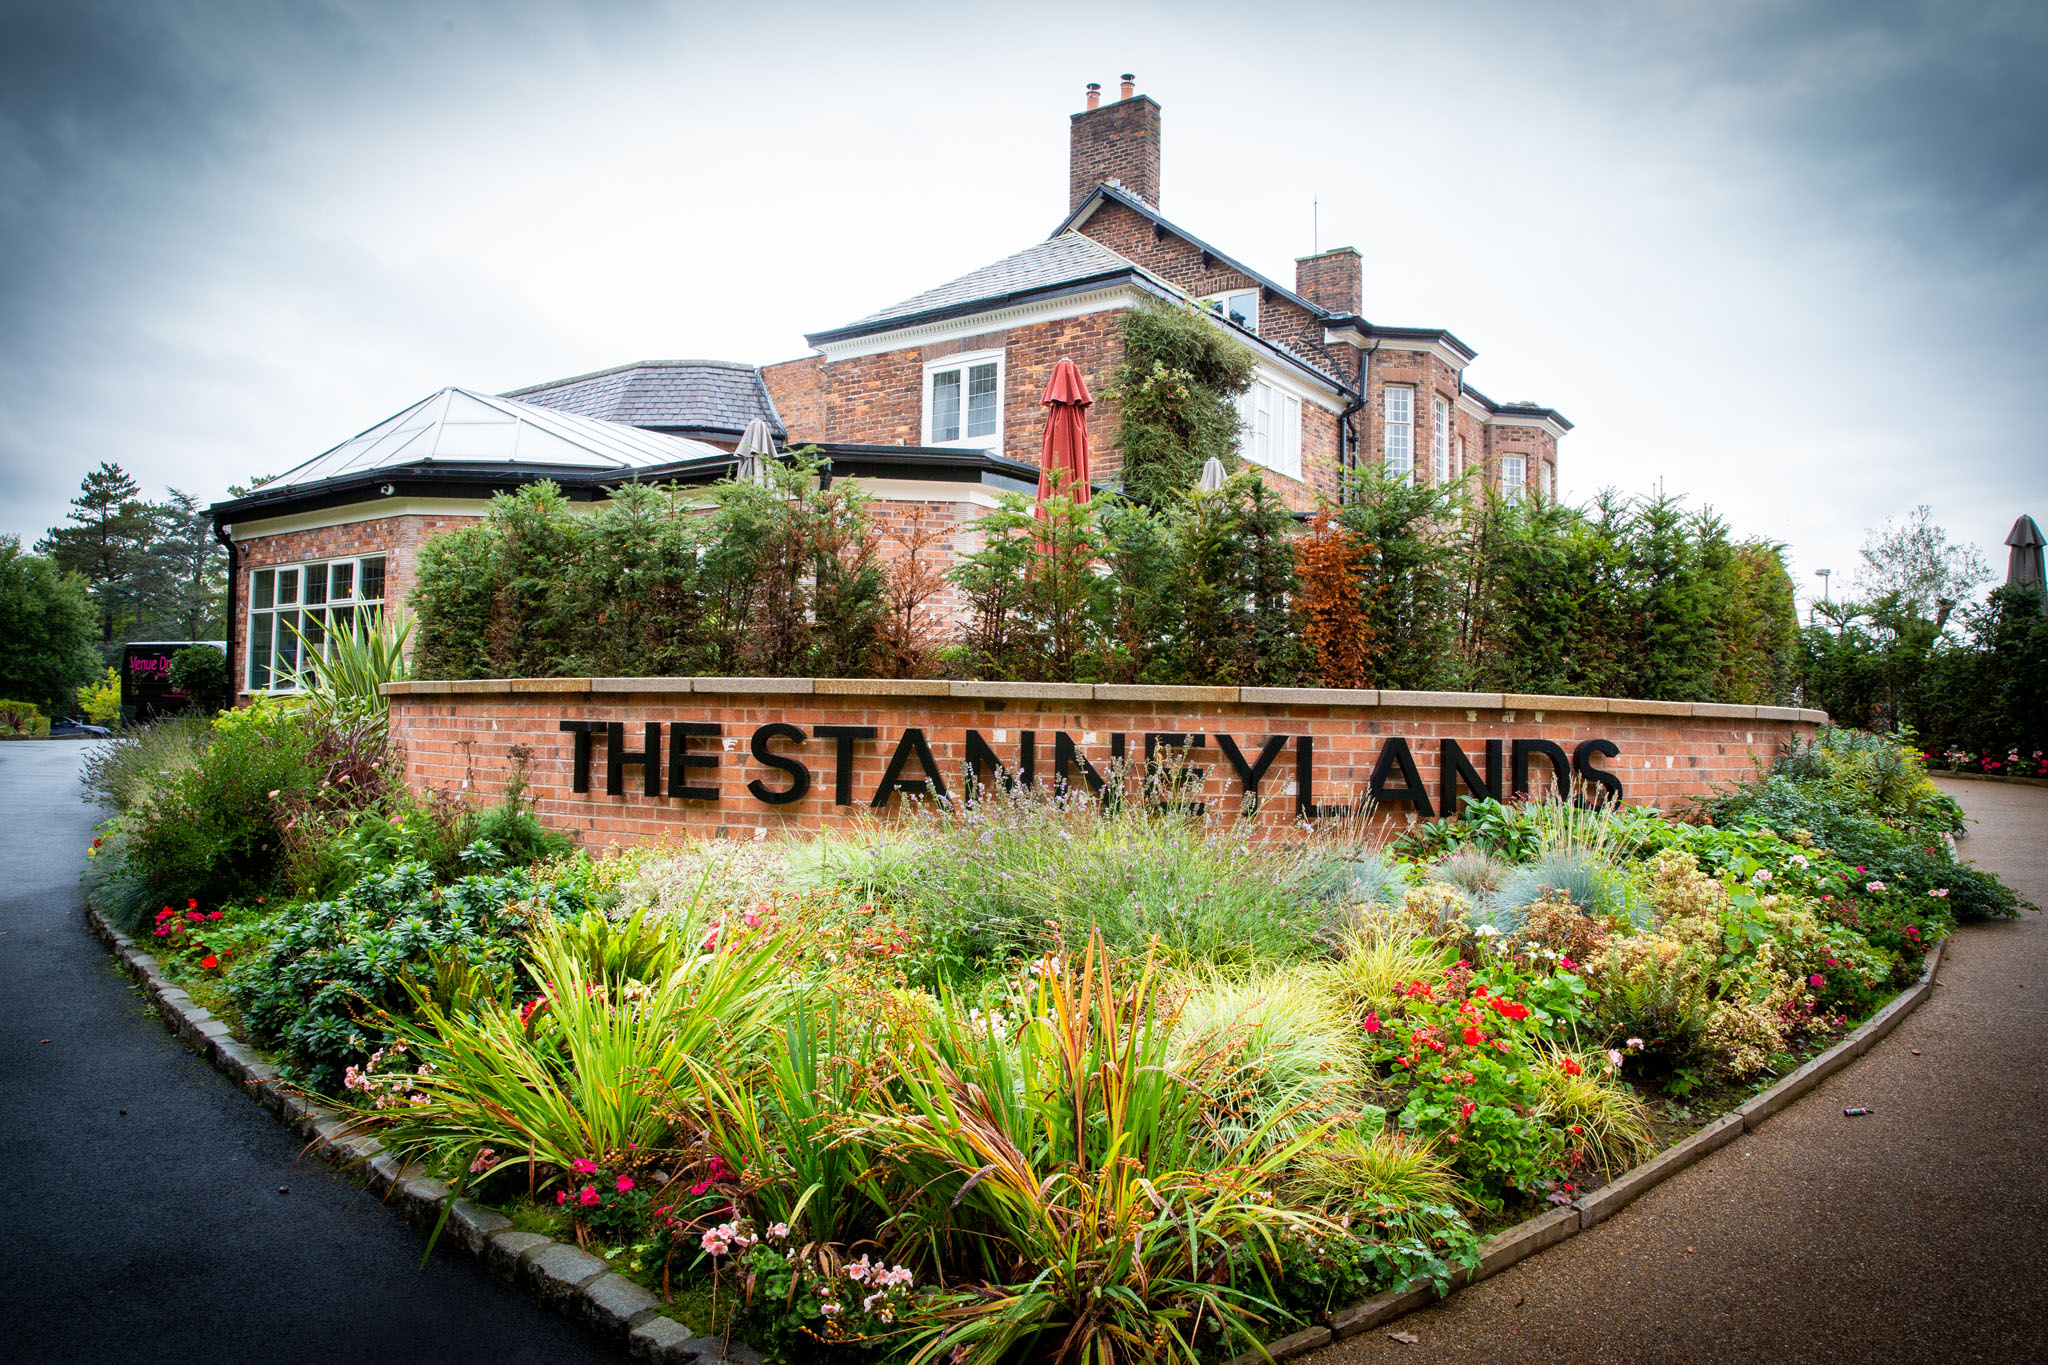 The Stanneylands Hotel